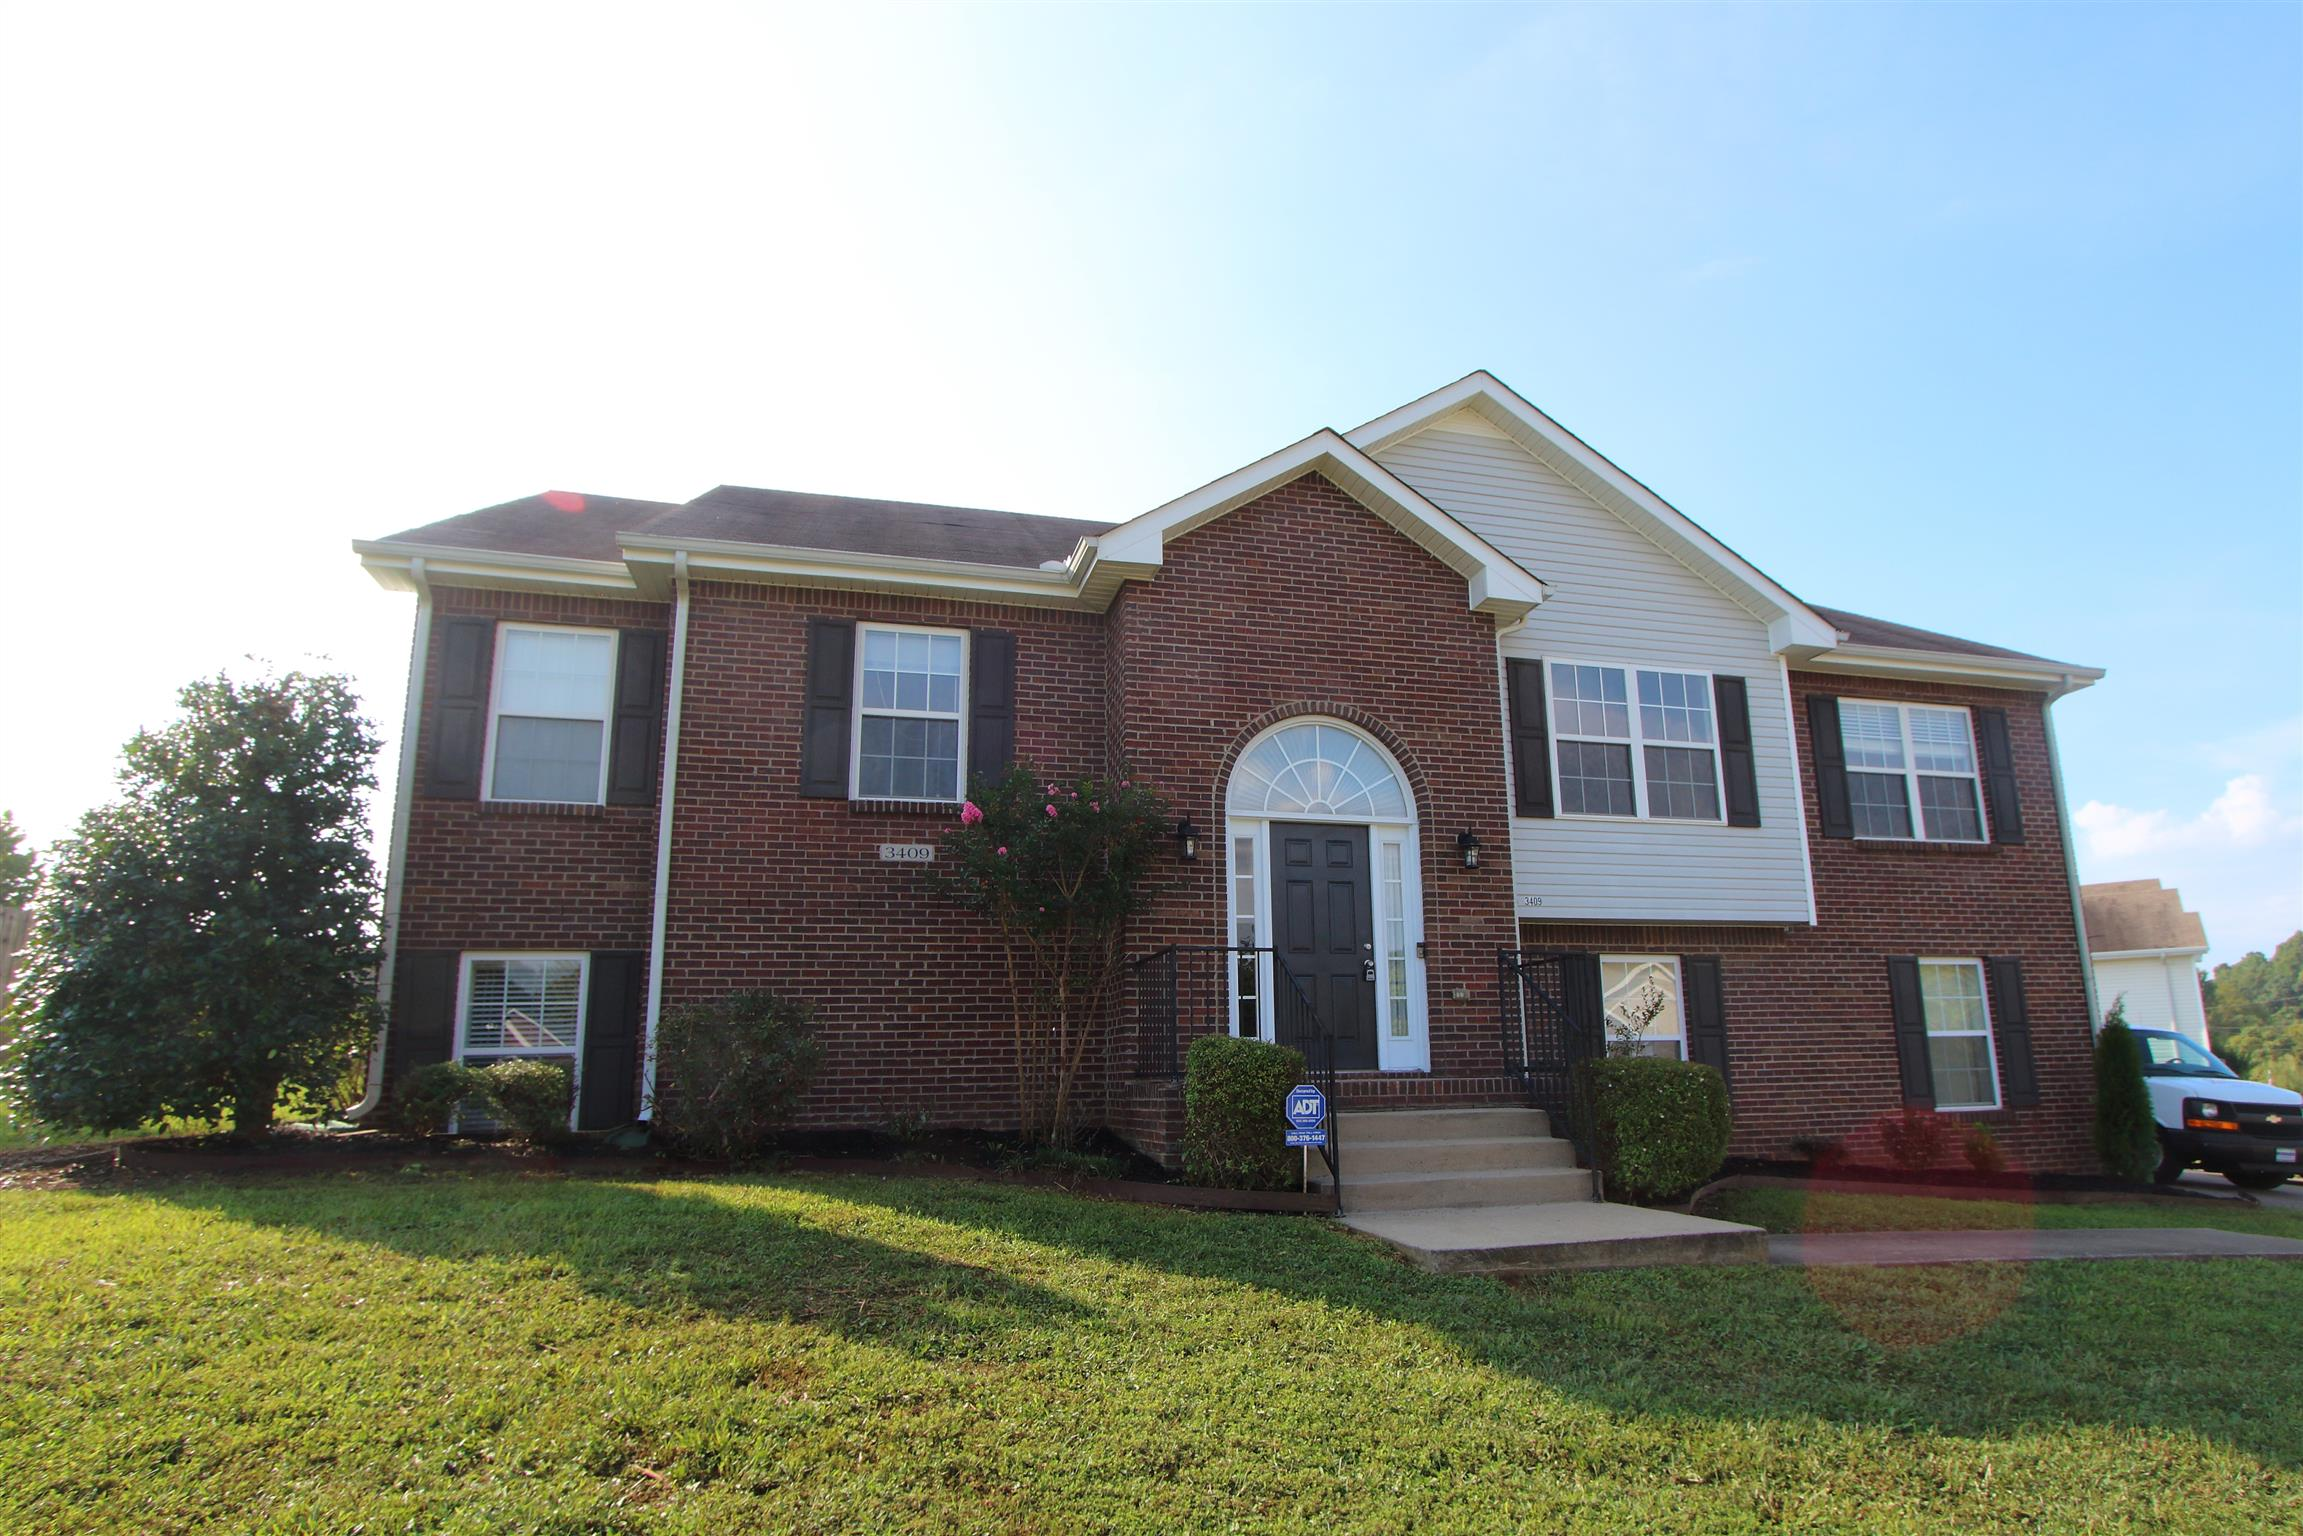 3409 Quicksilver Ln, Fort Campbell, Tennessee